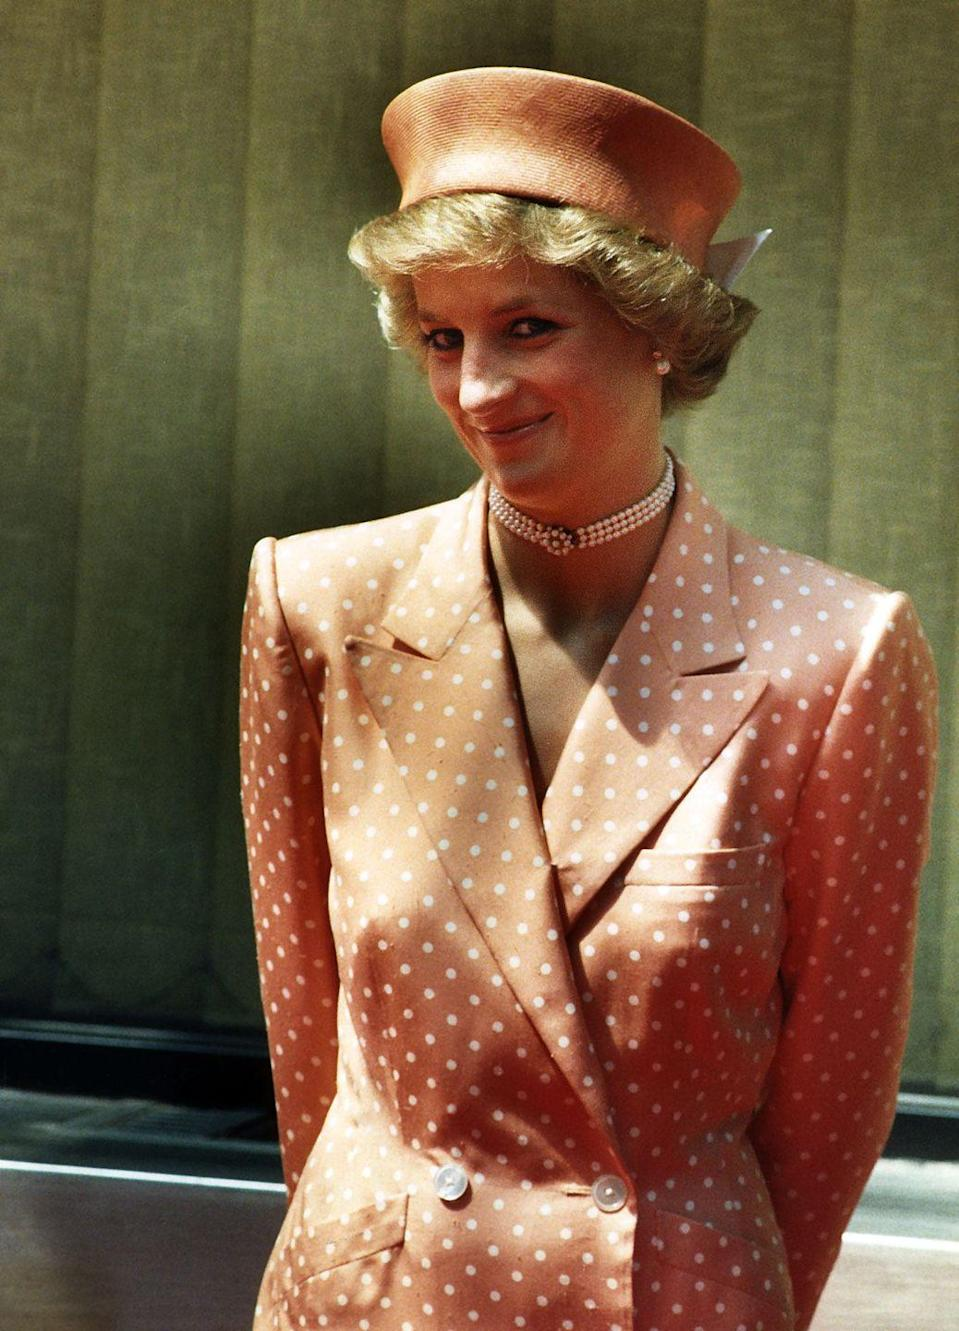 <p>The royal opted for a tan and cream color scheme when attending a state visit. </p>